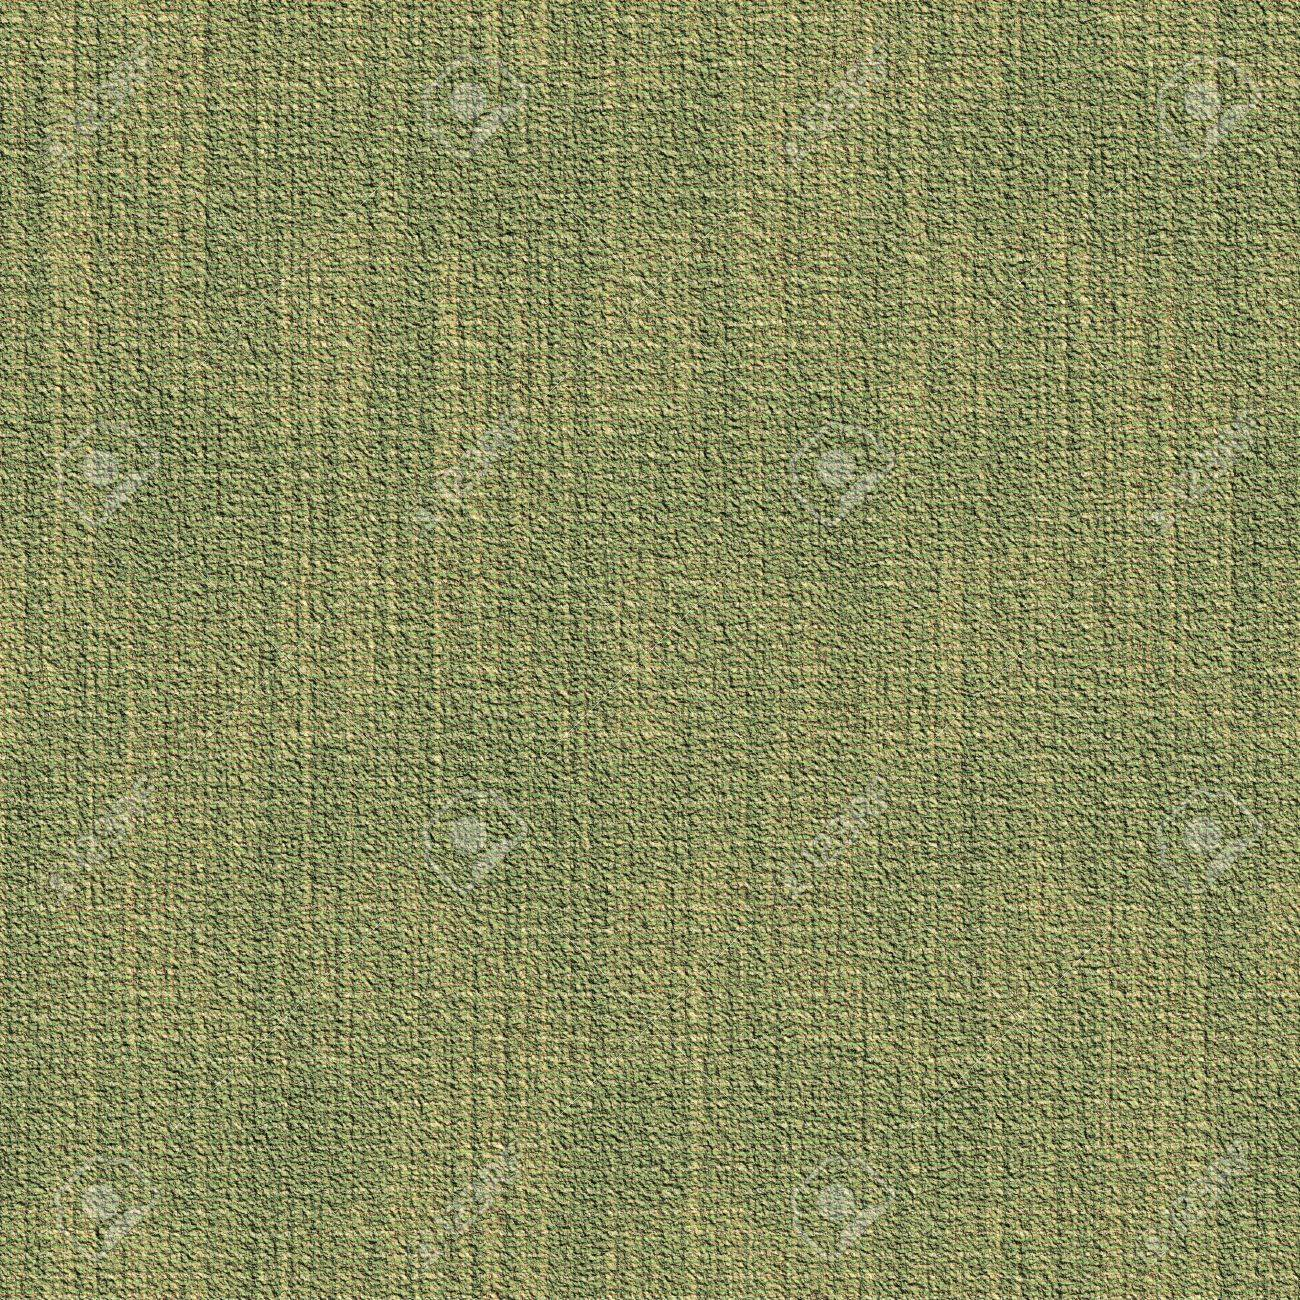 Curtain Texture Seamless wonderful curtain texture seamless preview demo textures materials